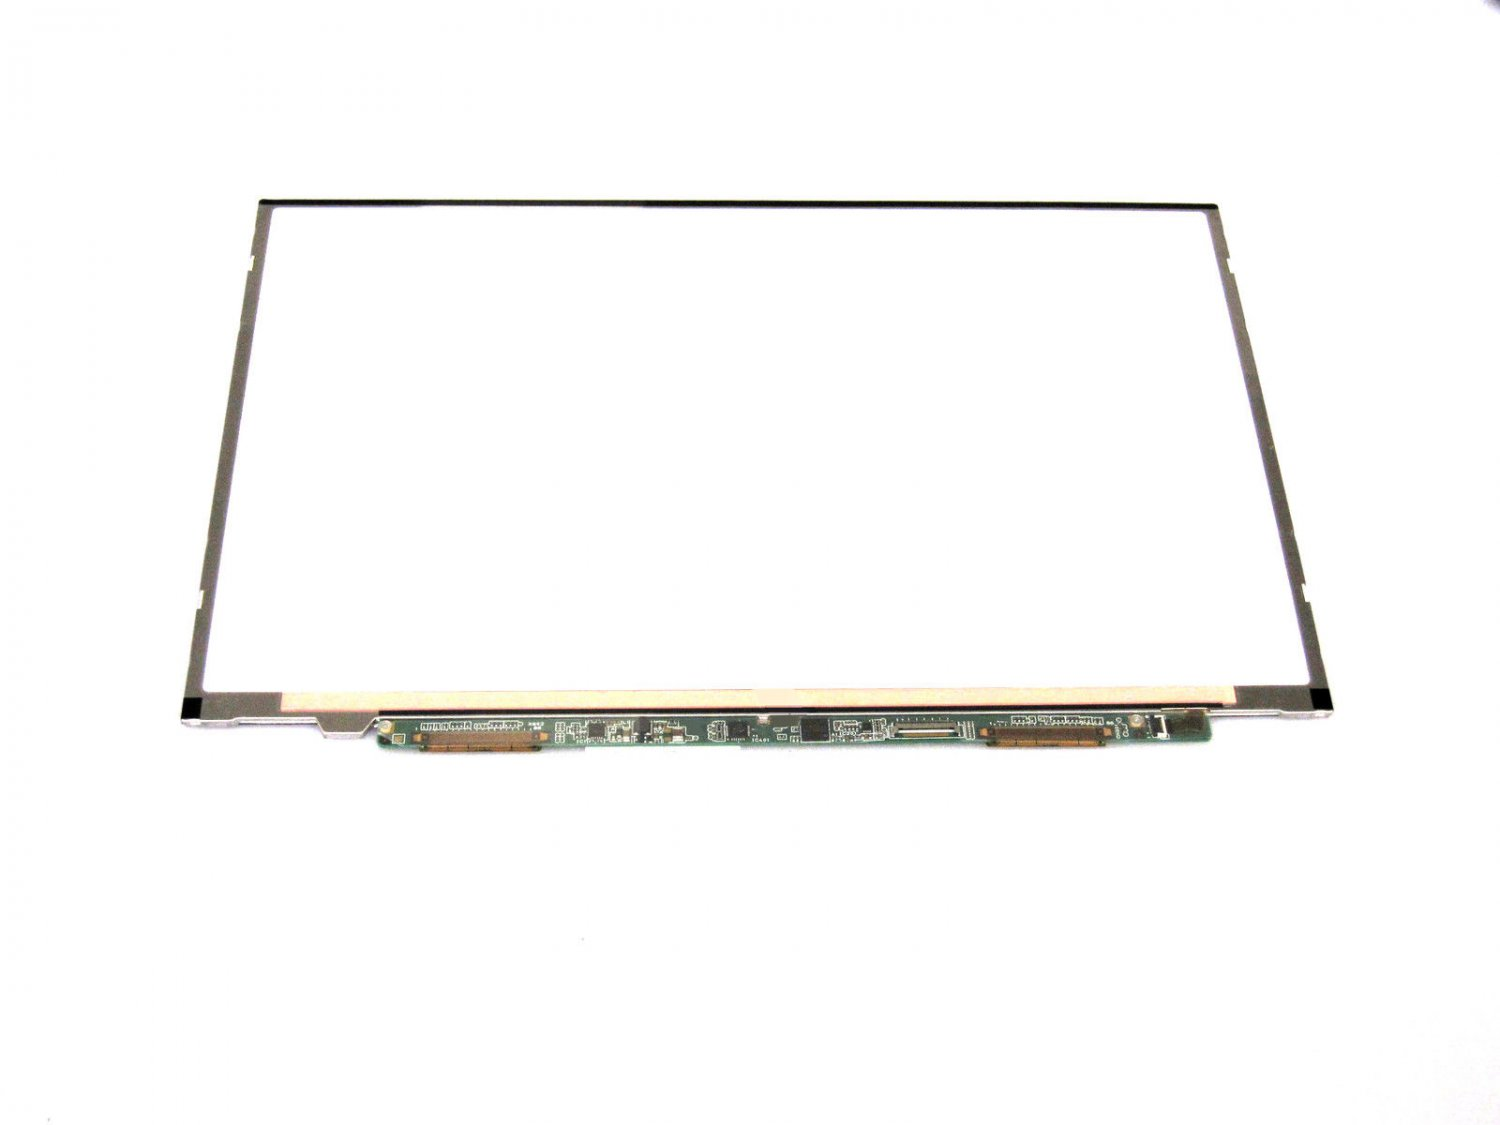 Sony Vaio Original Laptop LCD Screen For Laptop